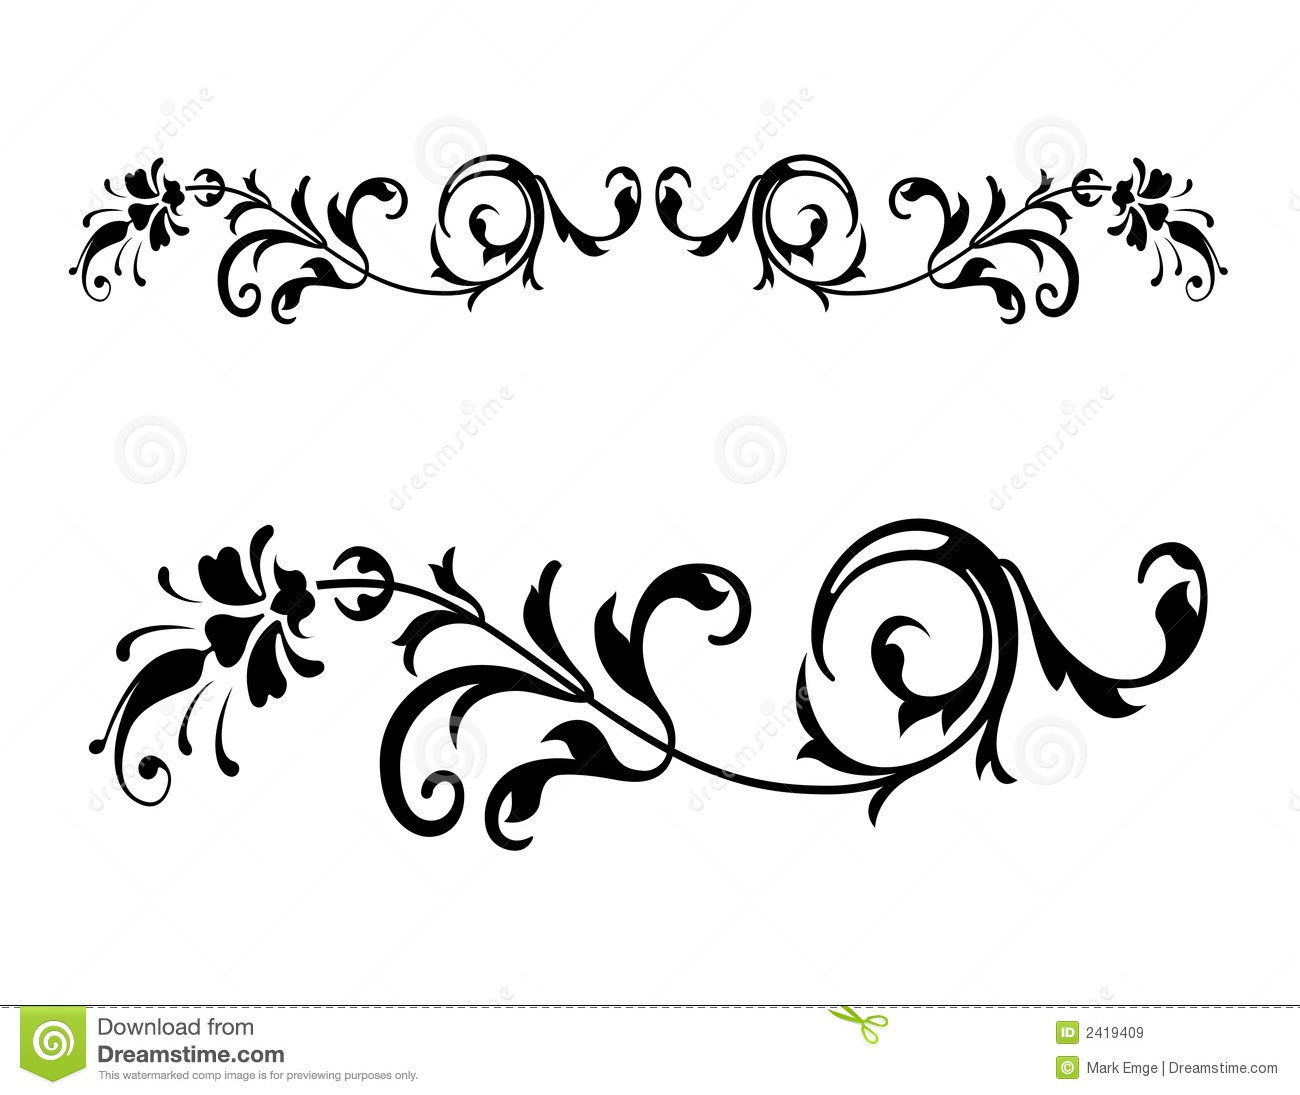 Download File Desain Frame Border Berformat Vector Corel Draw furthermore Ruthie Script A Z Calligraphy Lettering Styles To Print moreover Royalty Free Stock Images Floral Renaissance Vector 2 Image2419409 in addition Uppercase Futura as well Handwriting. on elegant letter e